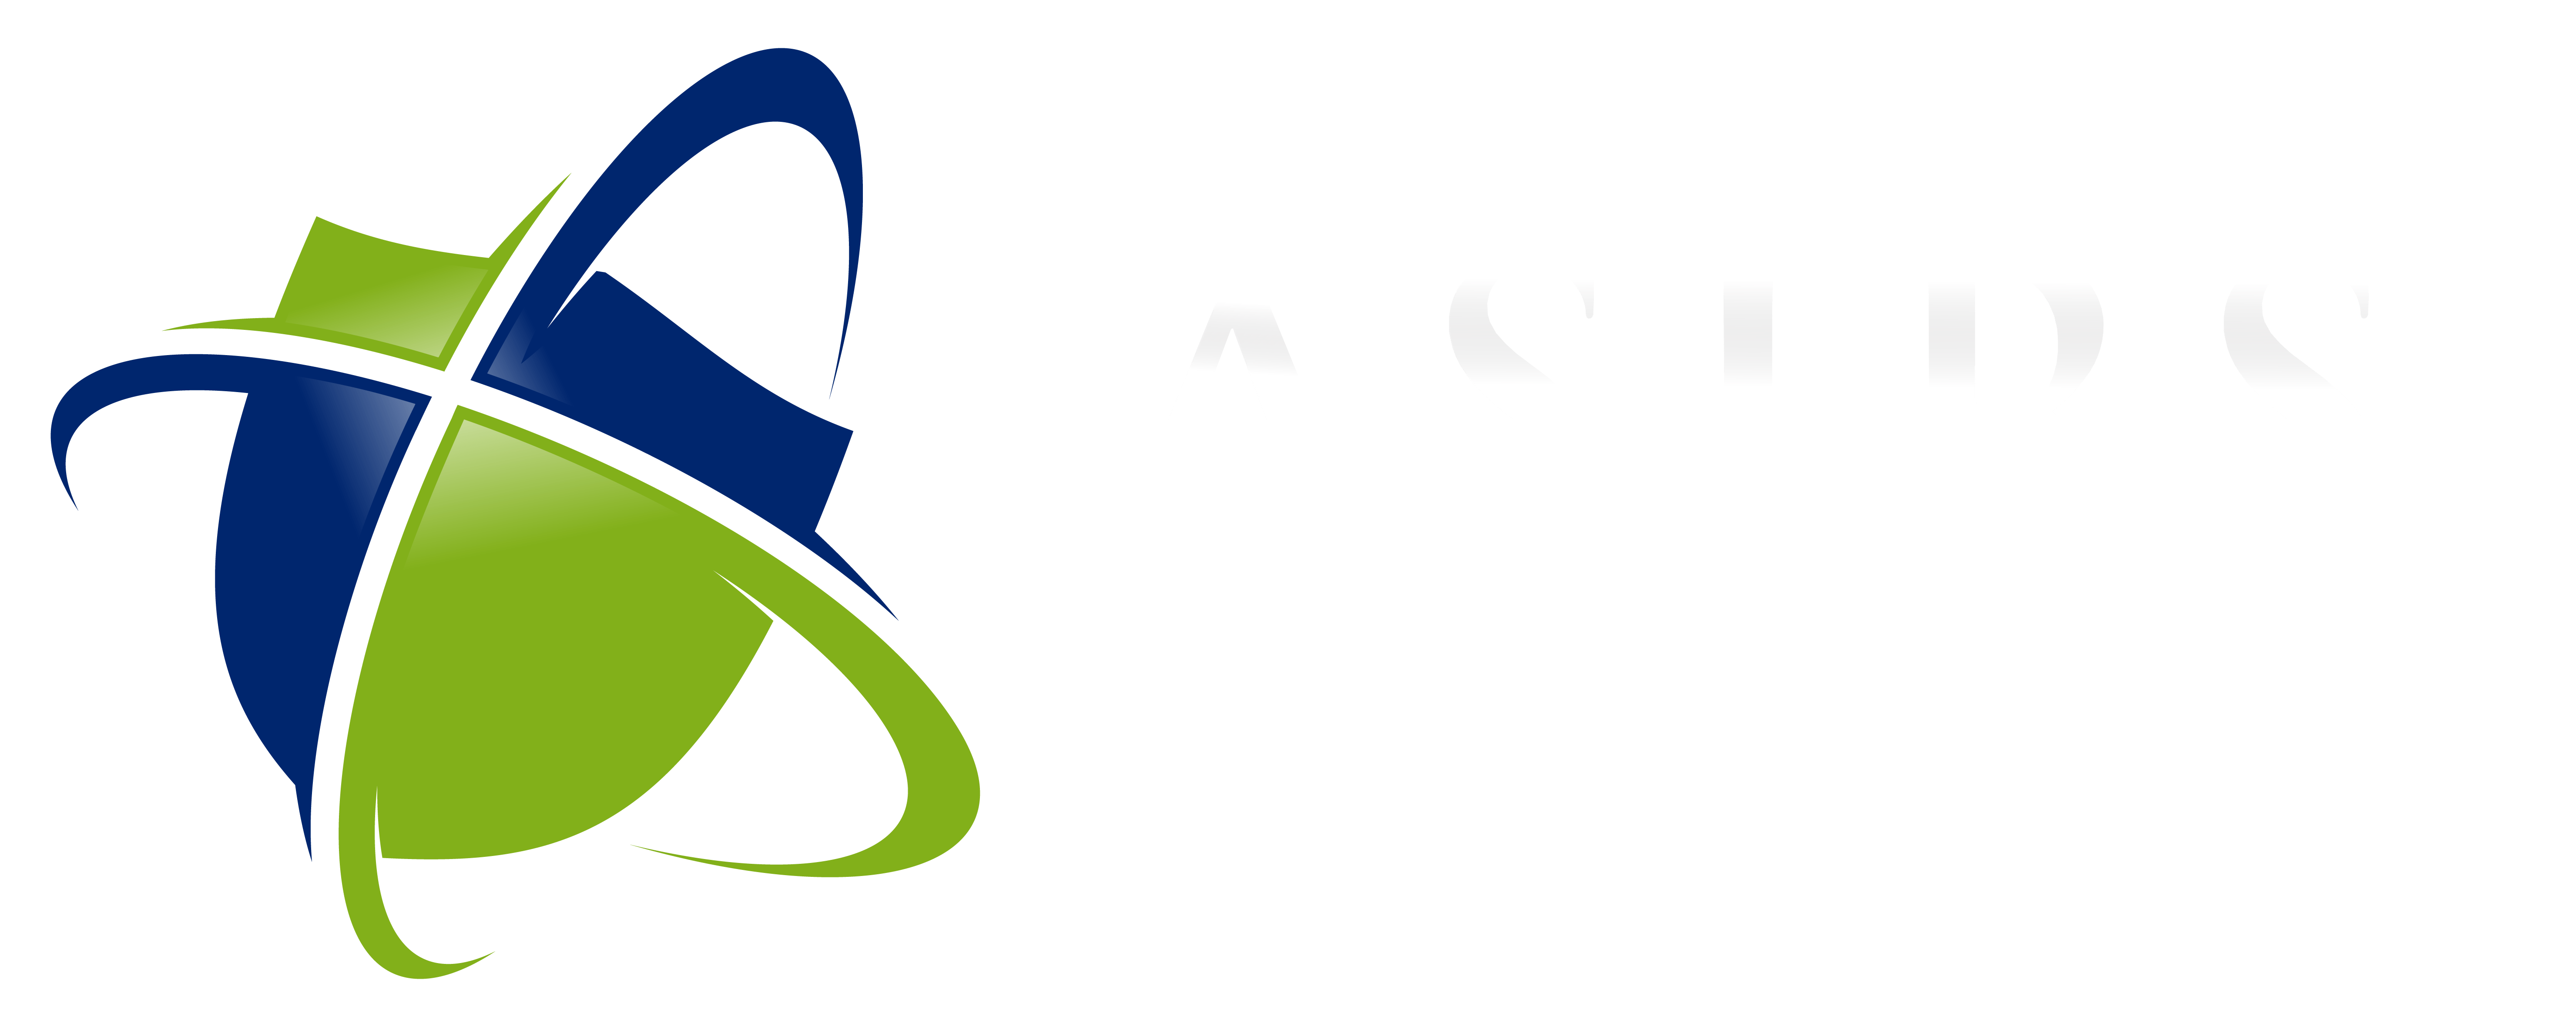 Academy of Security, Intelligence and Risk Studies